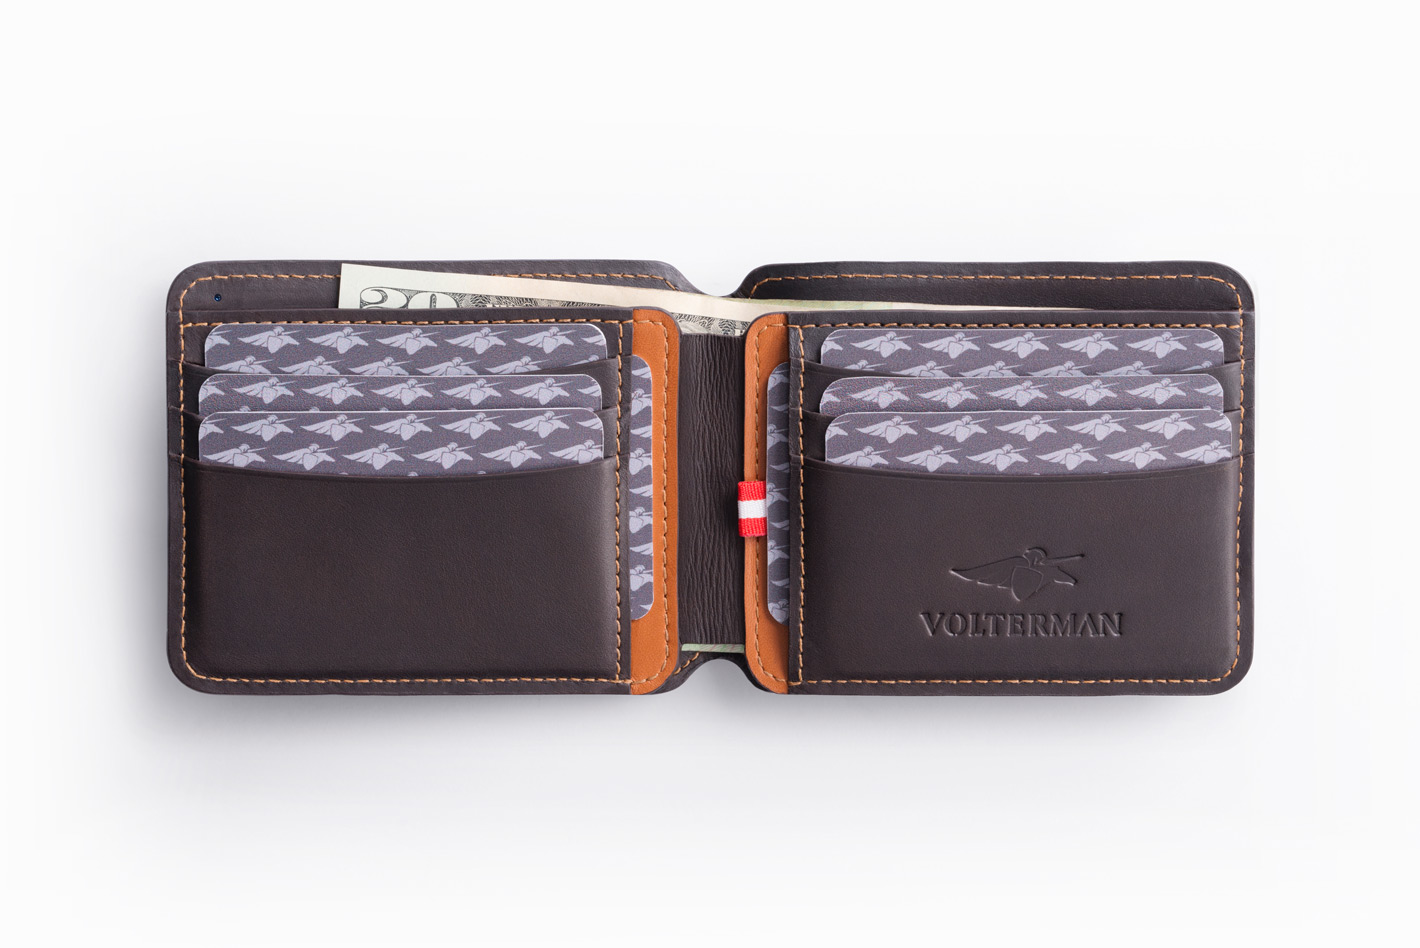 Volterman Smart Wallet On Packaging Of The World